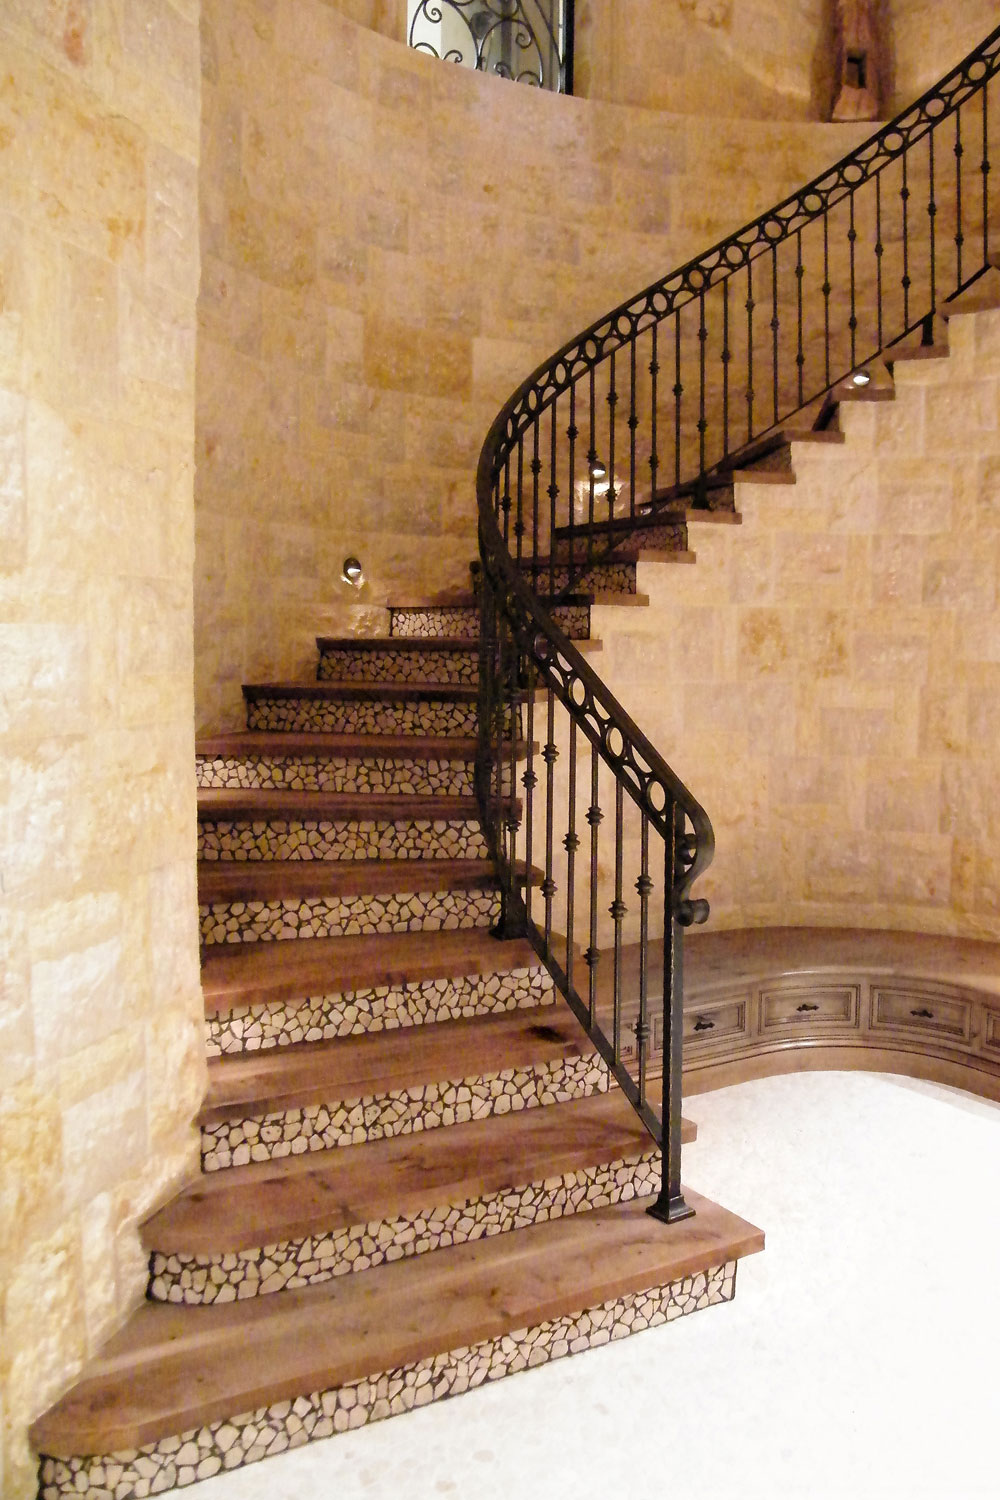 stairs-tile-web.jpg